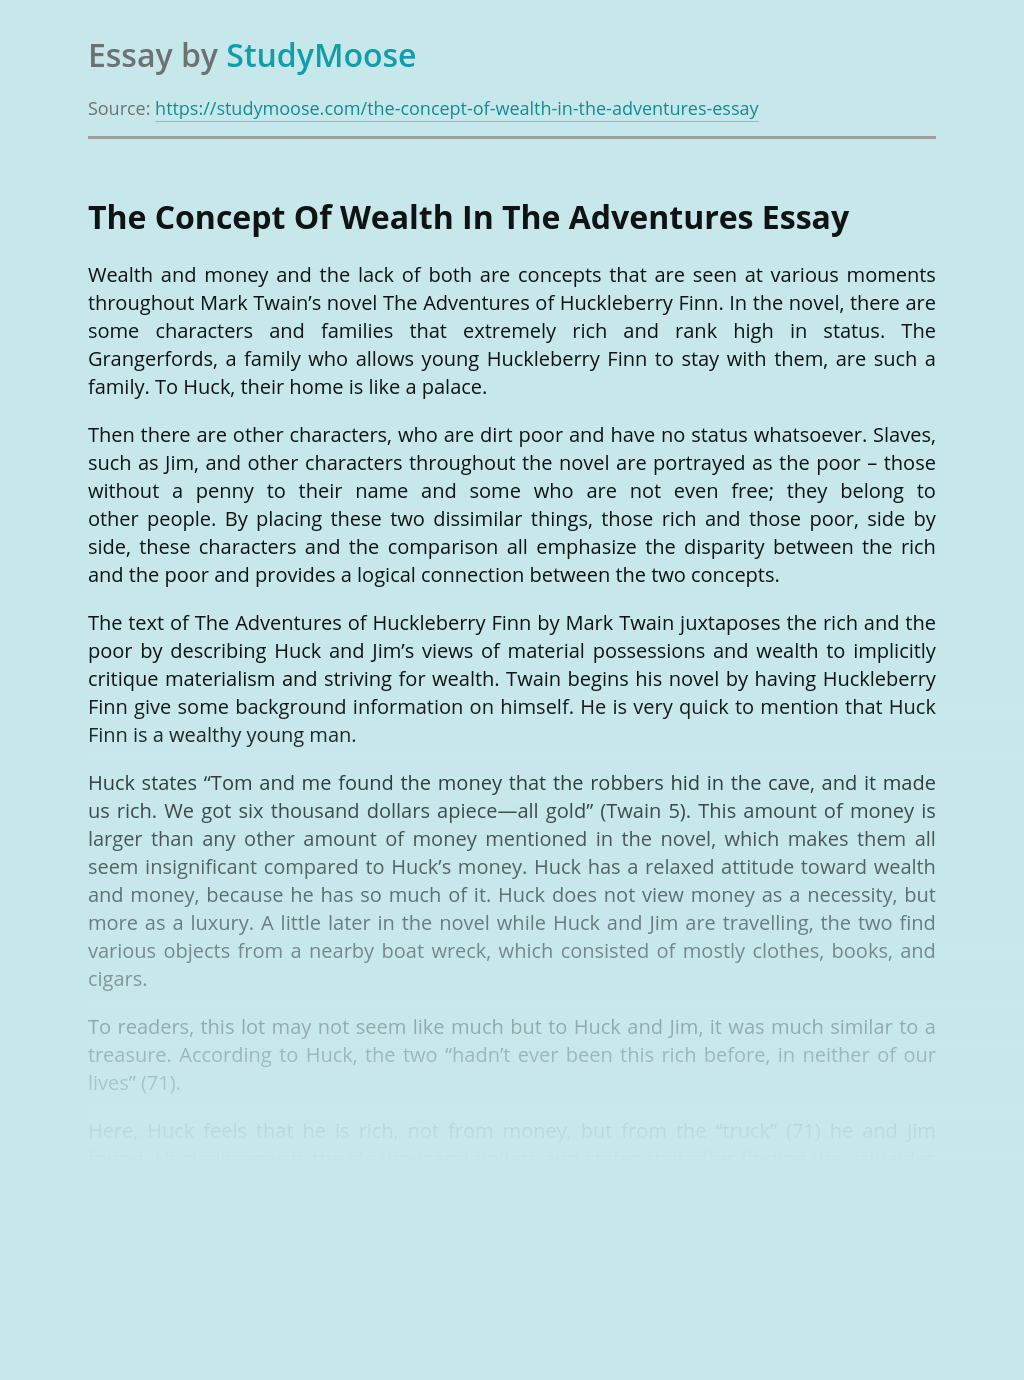 The Concept Of Wealth In The Adventures